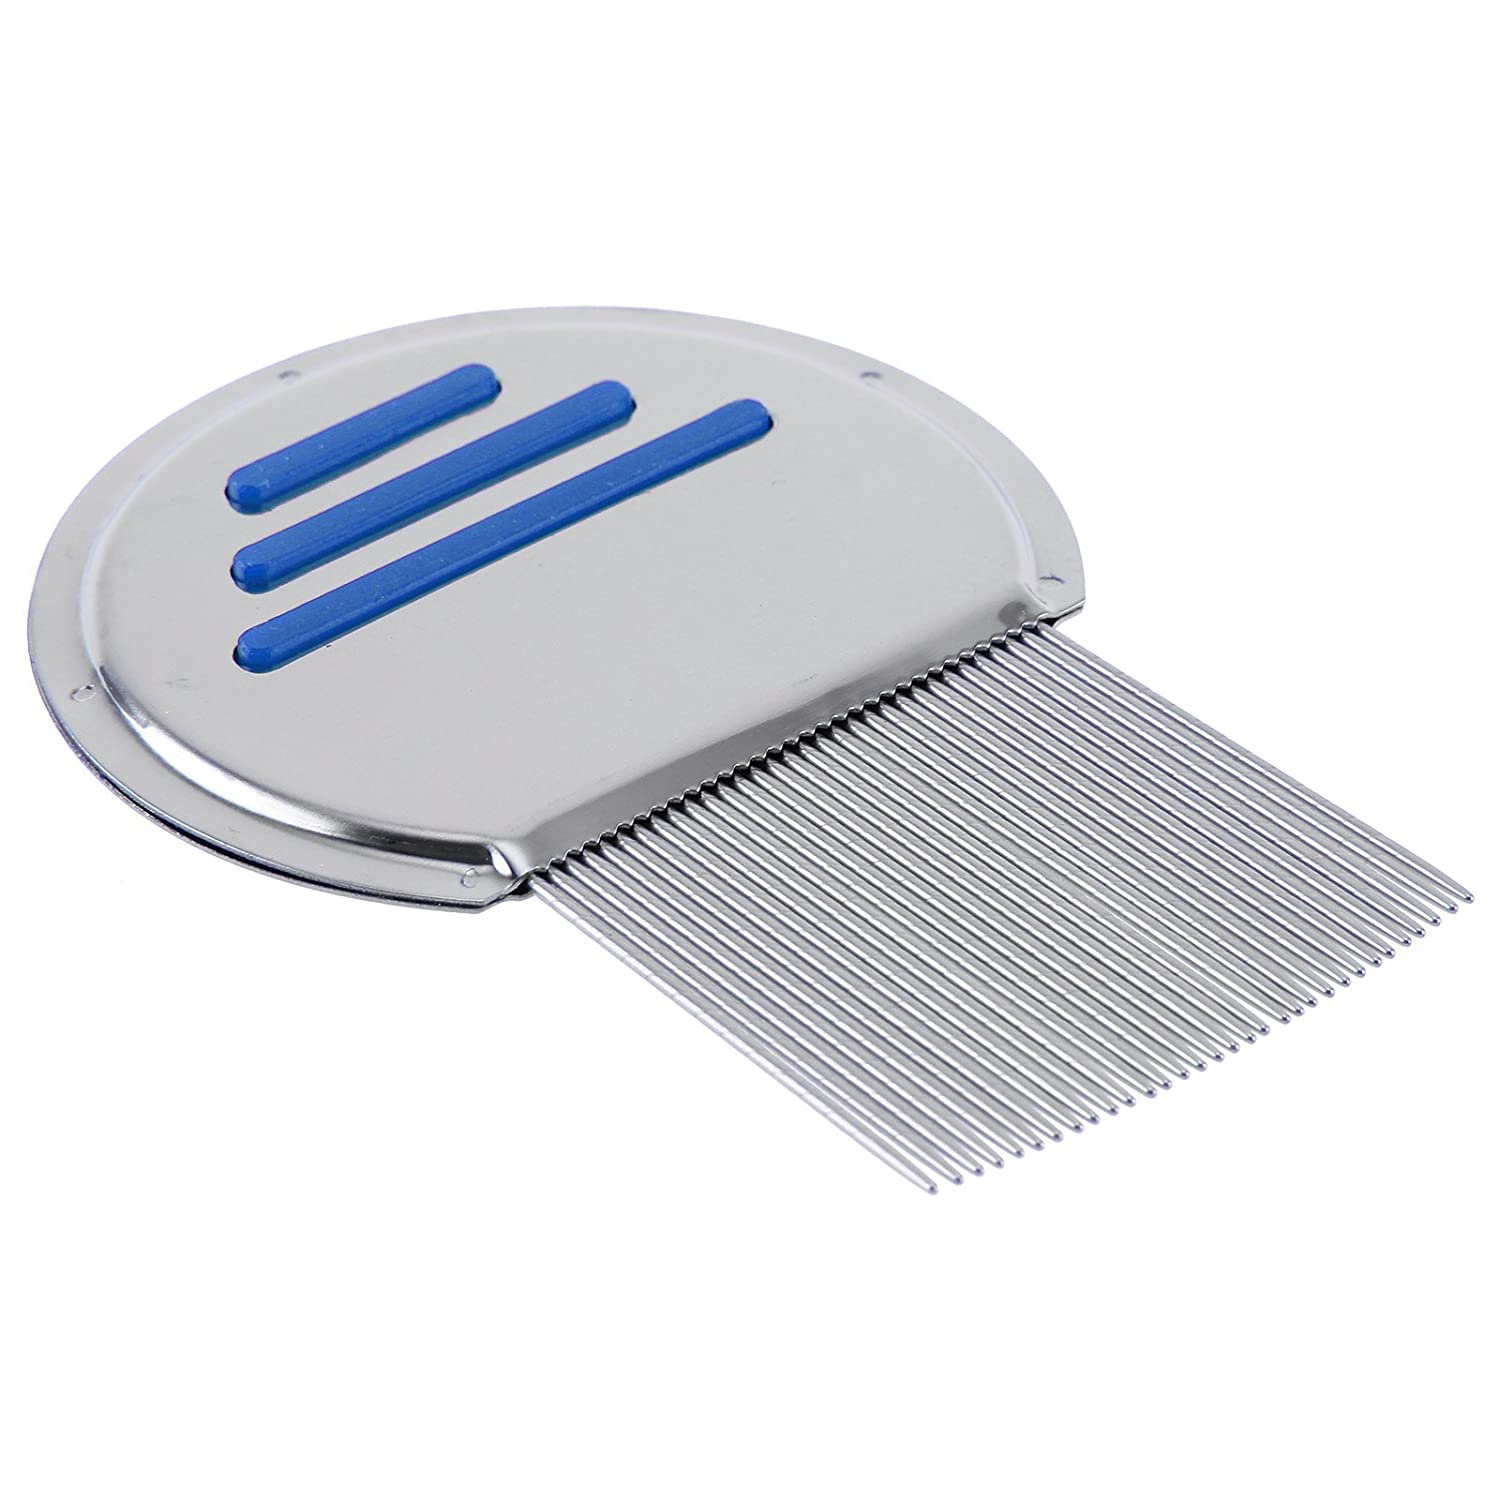 MultiWare Lice Nit Get Down To Nitty Gritty Stainless Steel Removal Comb Metal Head And Teeth Silver oem